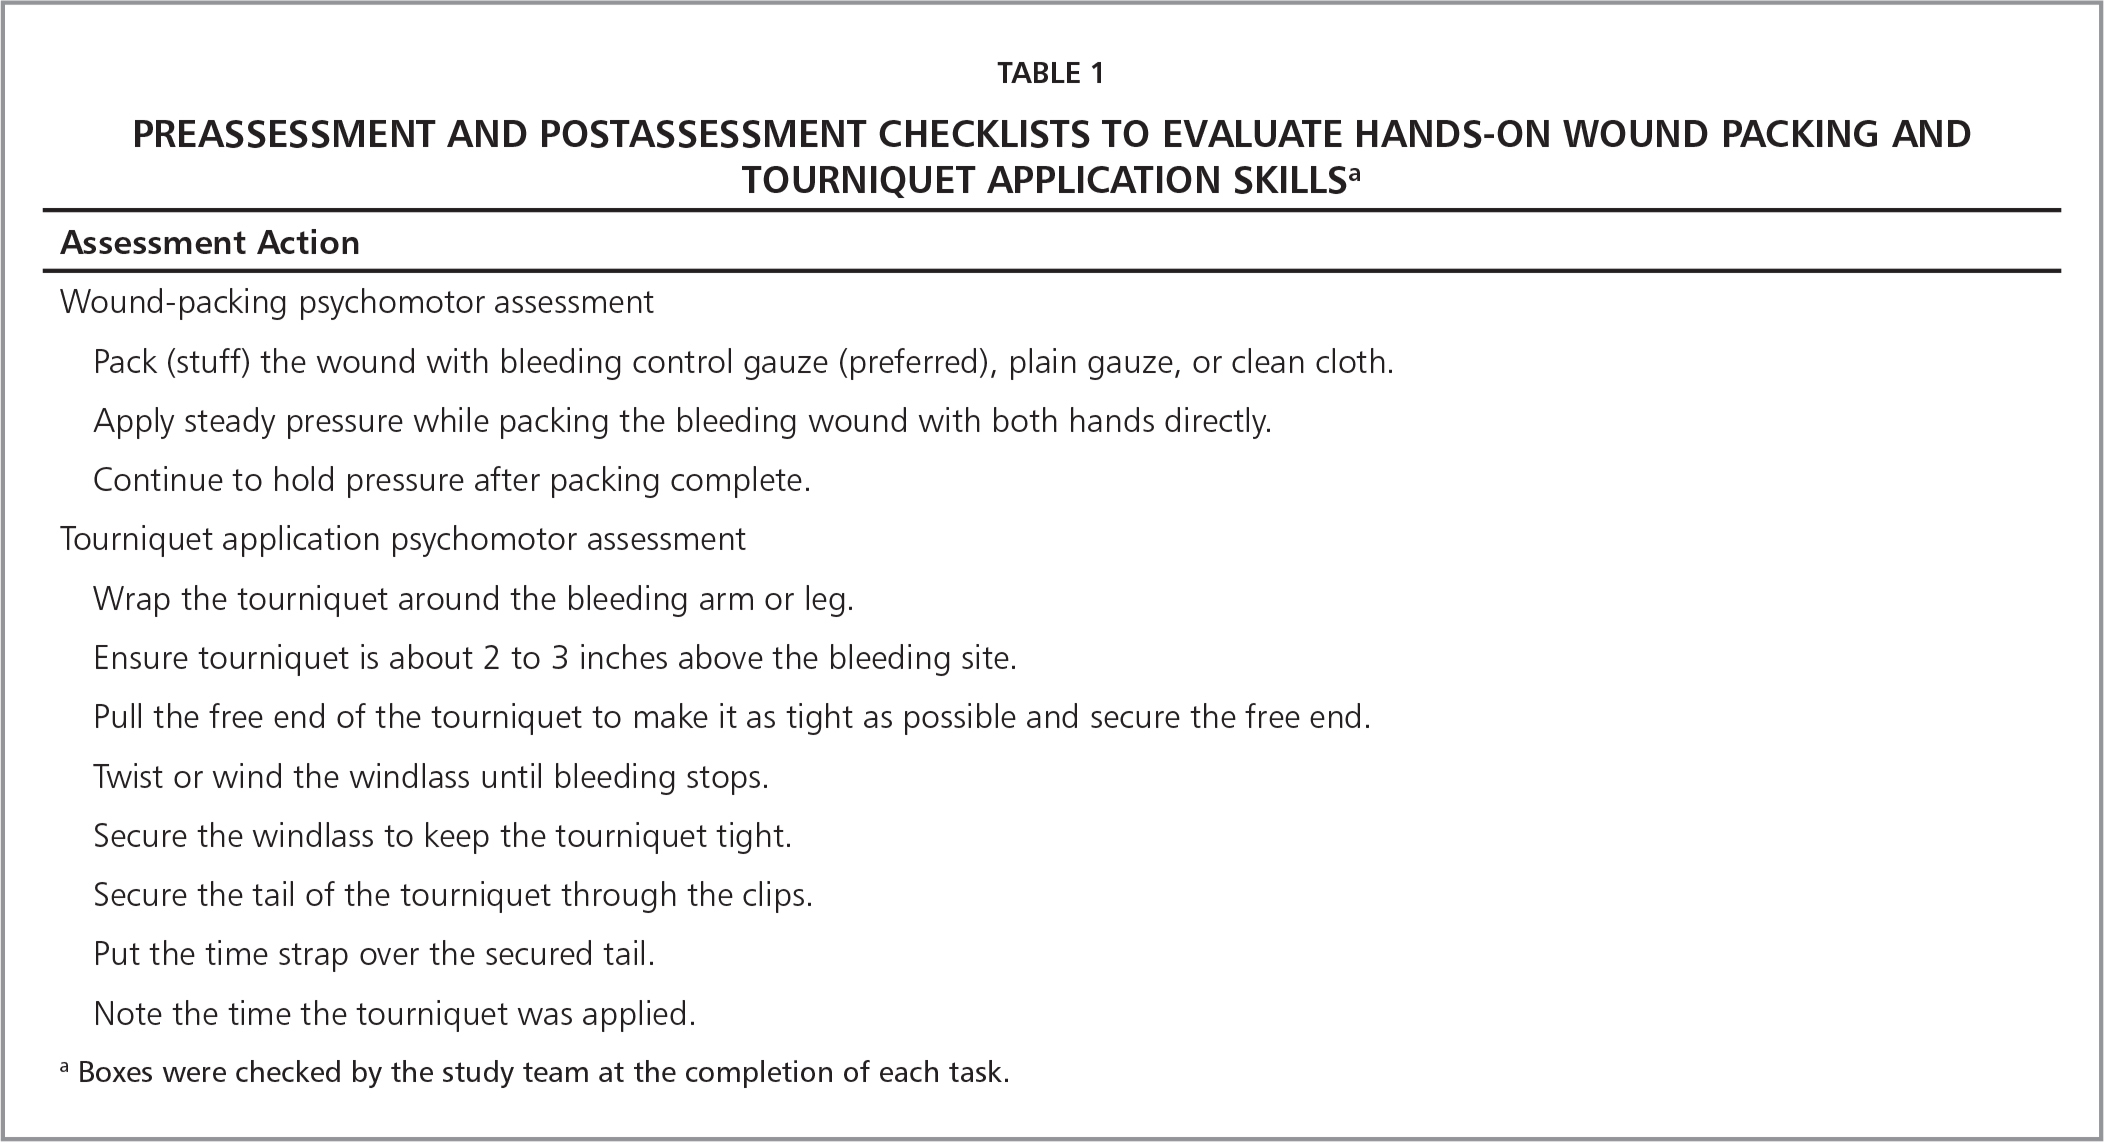 Preassessment and Postassessment Checklists to Evaluate Hands-On Wound Packing and Tourniquet Application Skillsa